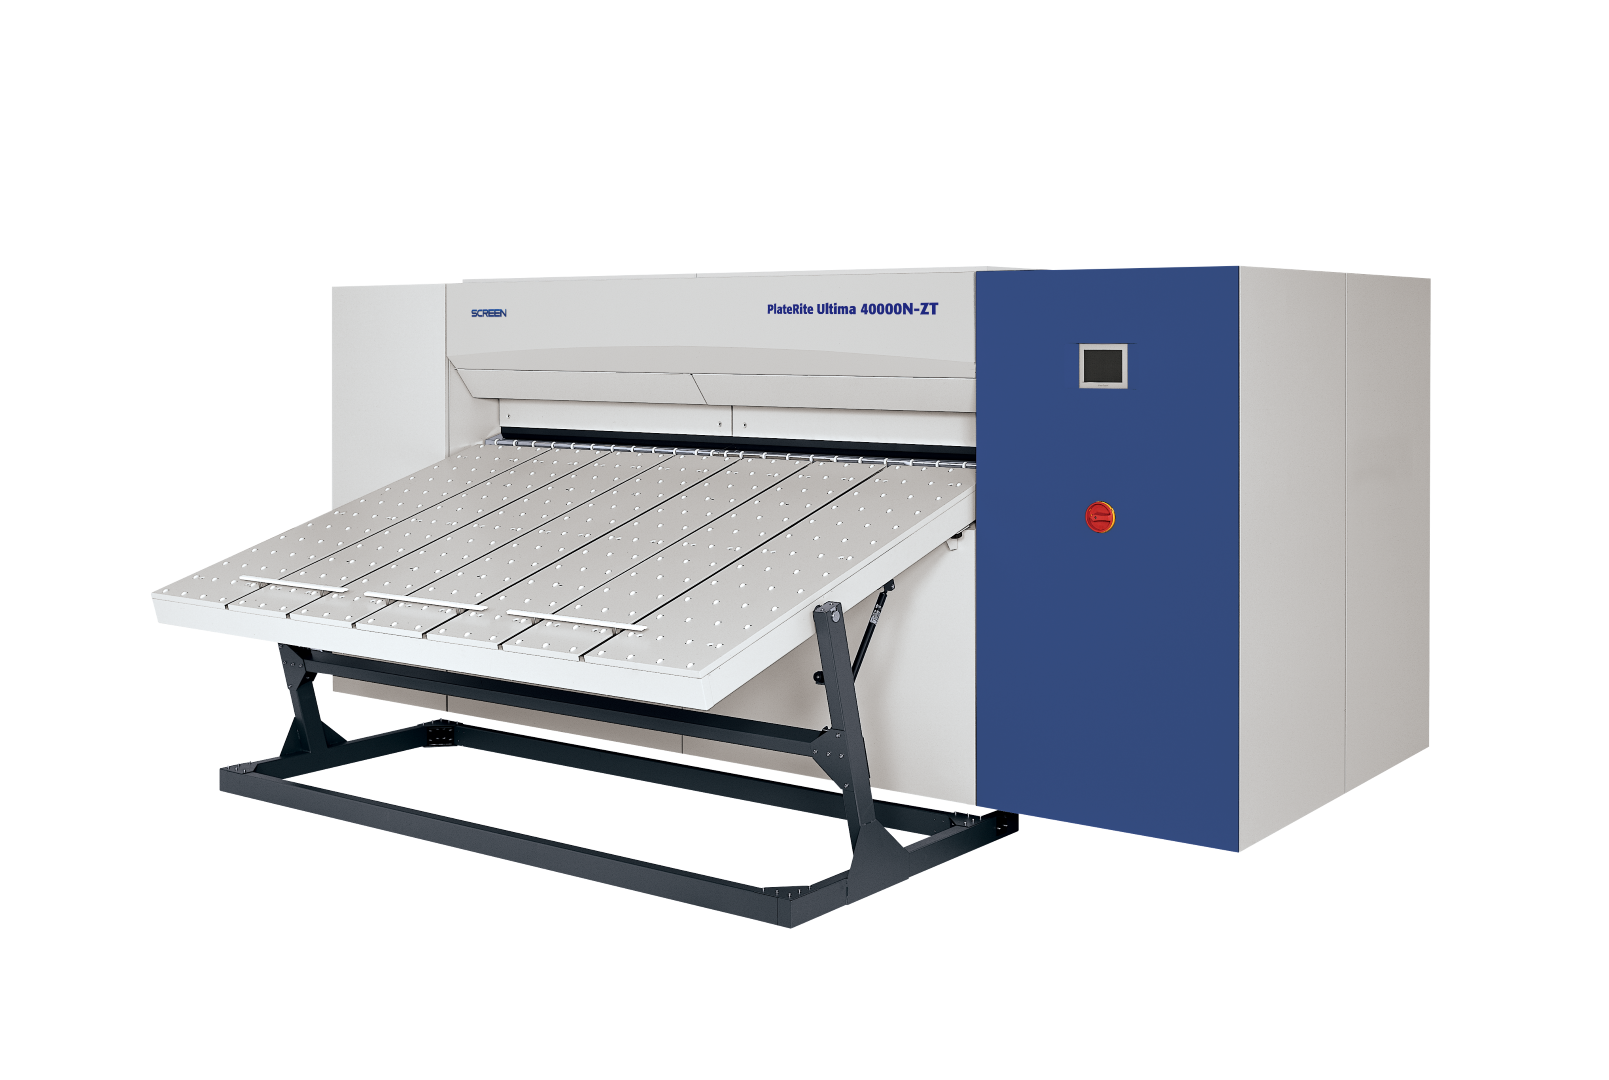 SCREEN Launches PlateRite Ultima 40000N Series, Designed to Handle 40 A4-Size Pages